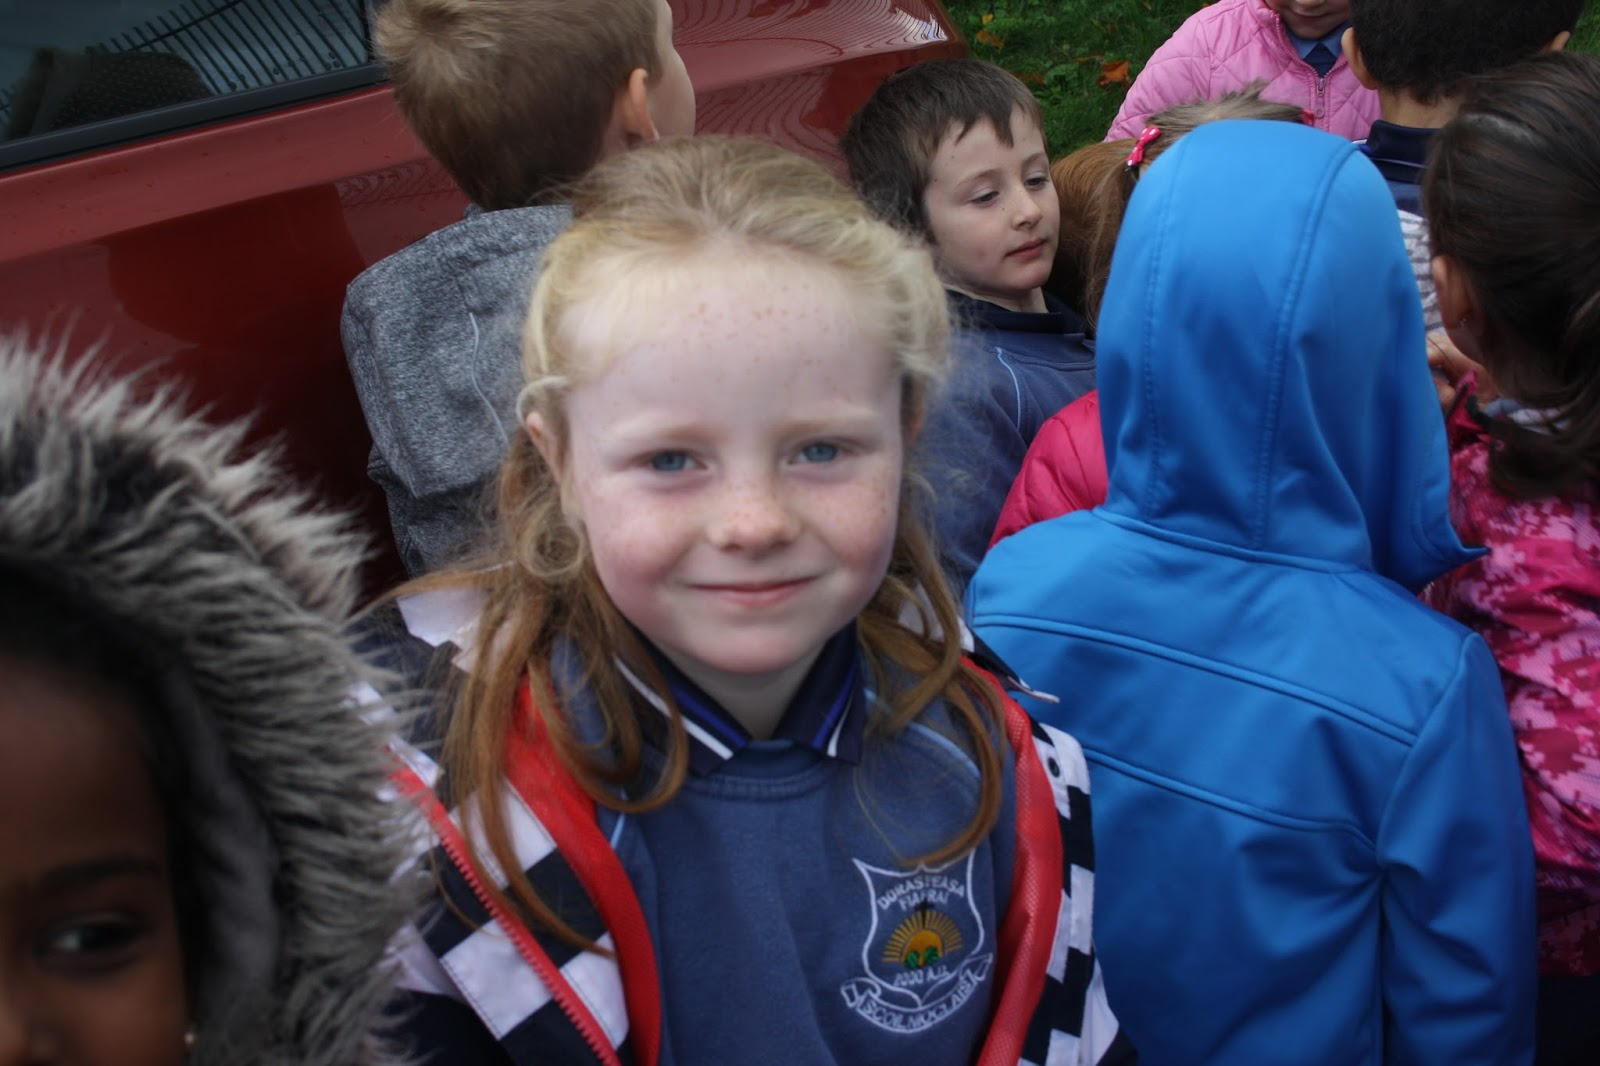 4th class mar 3 Scoil bara naofa cailíní 3rd / 4th class (2015-2016) weather girls our gaeilge topic in rang 3 agus rang 4 for the past few weeks has been an aimsir (the weather).